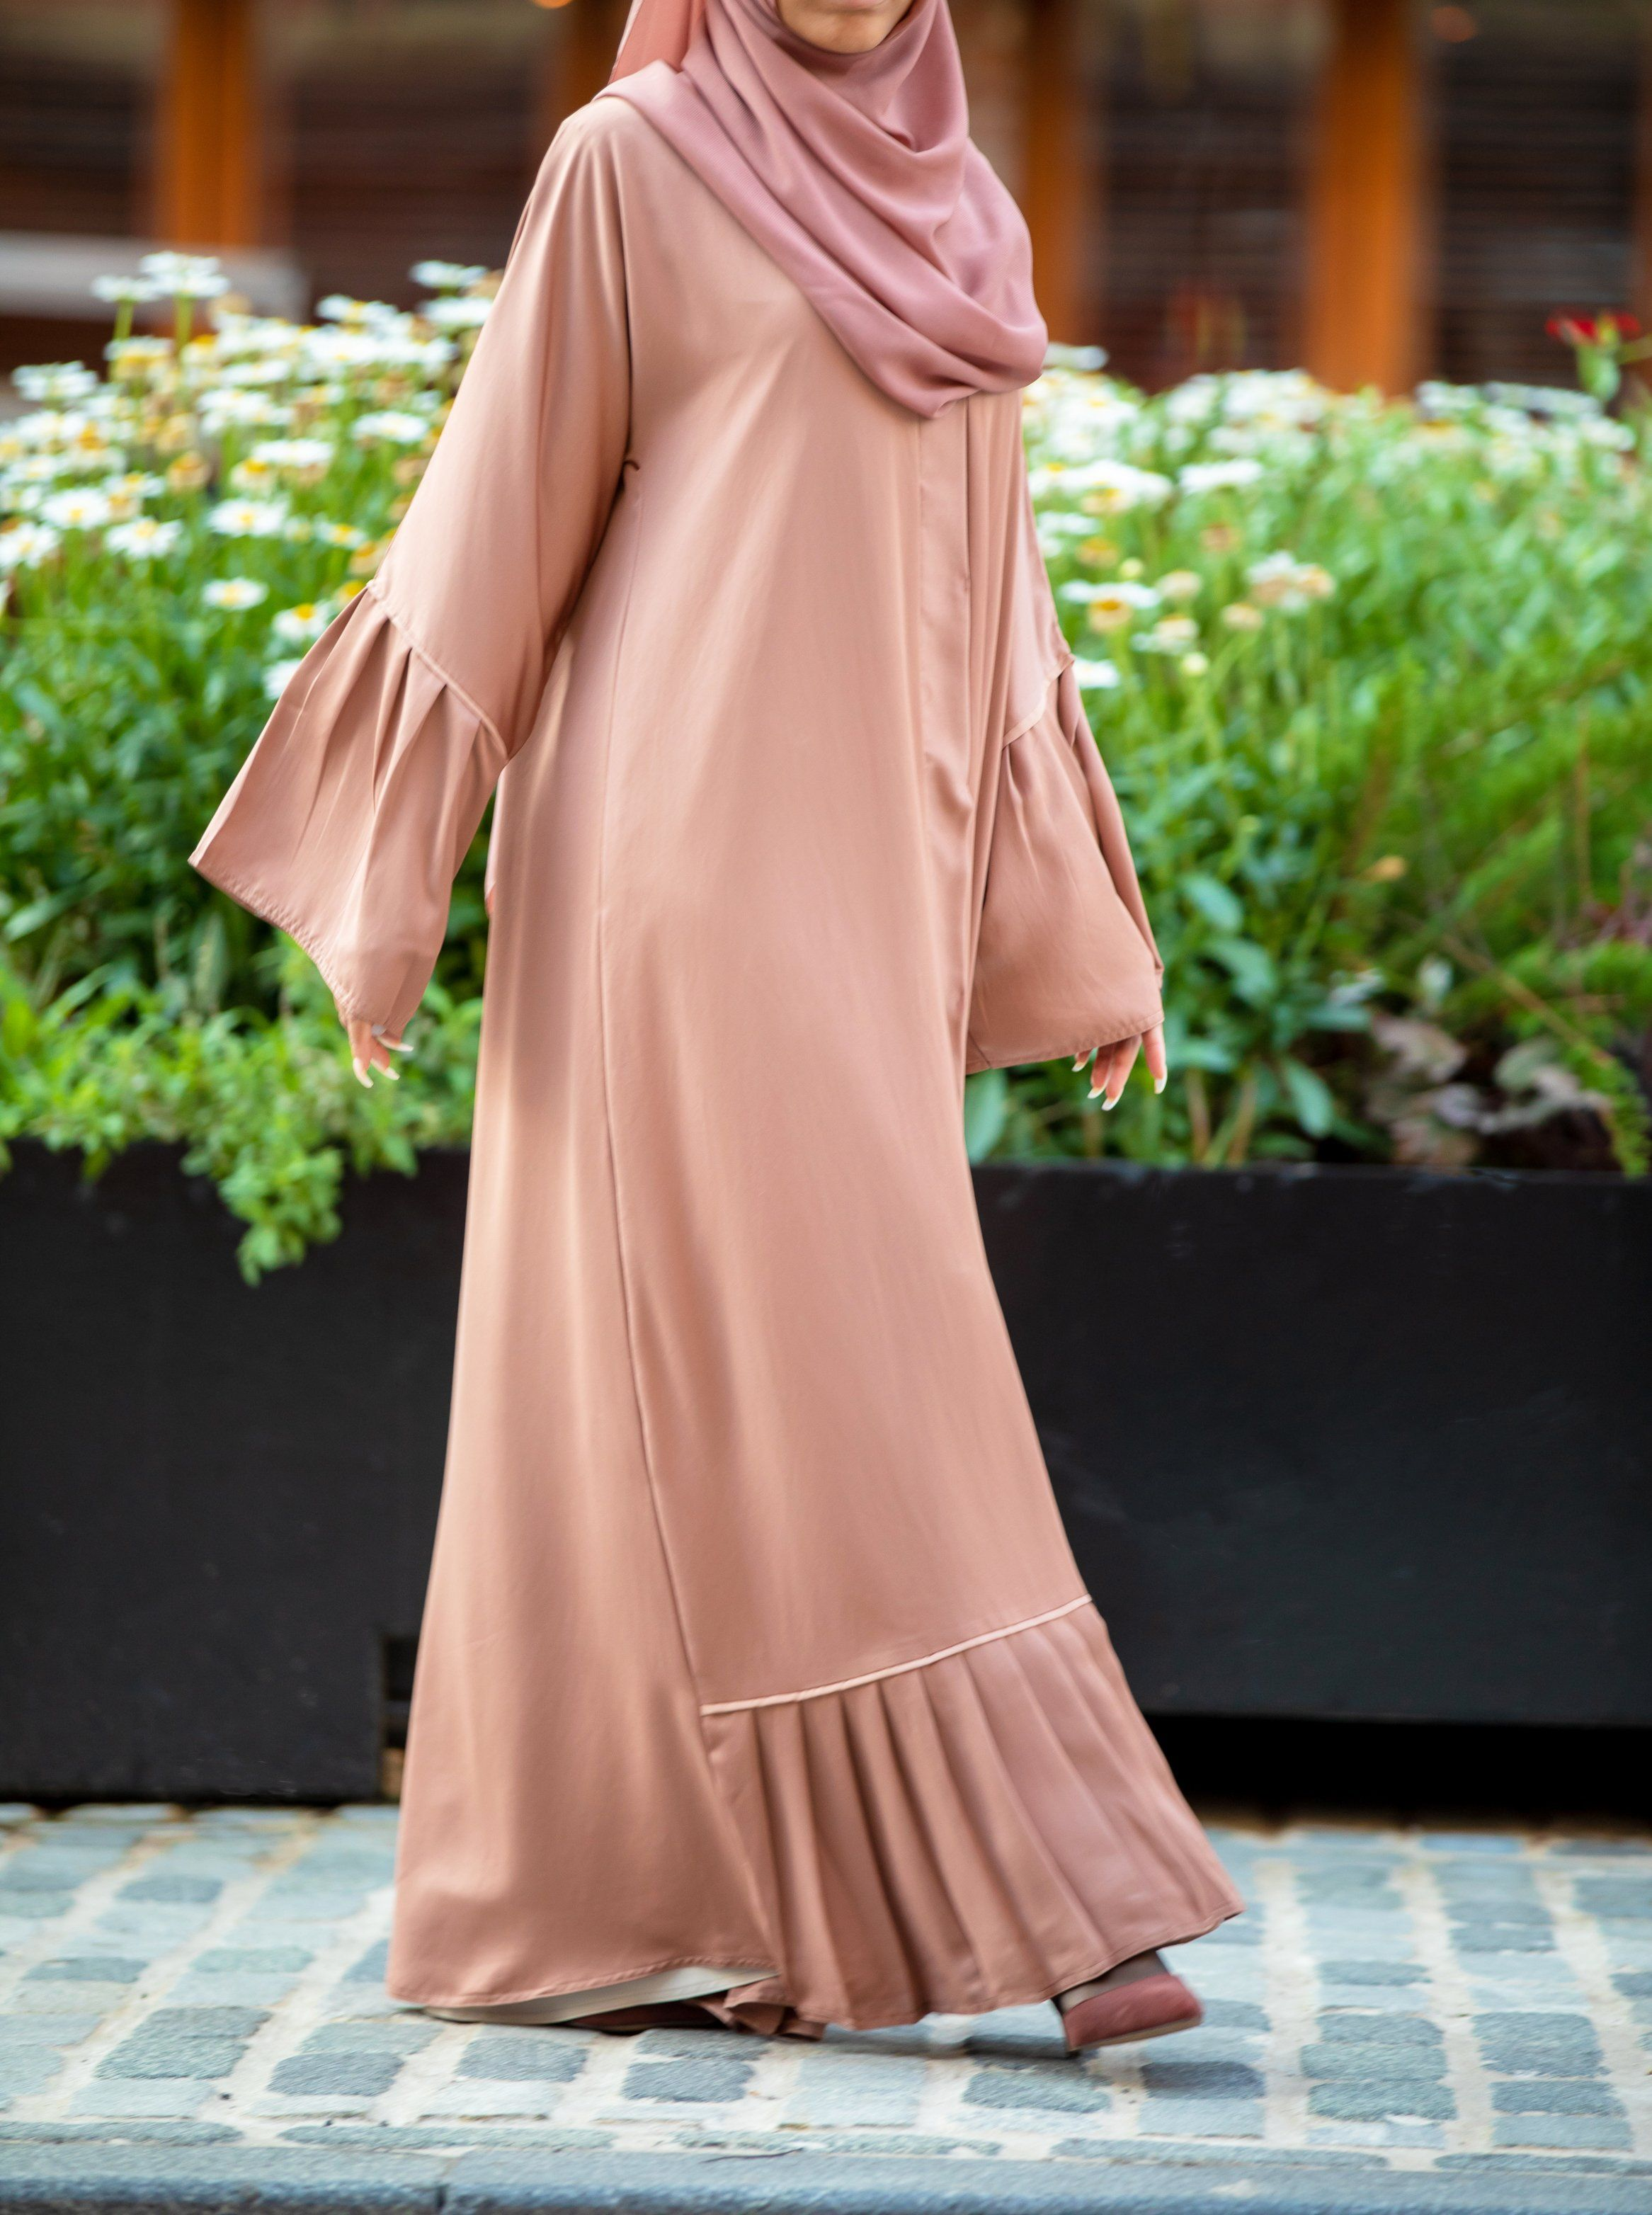 Sofia Abaya  Abayas fashion, Muslim fashion outfits, Abaya fashion